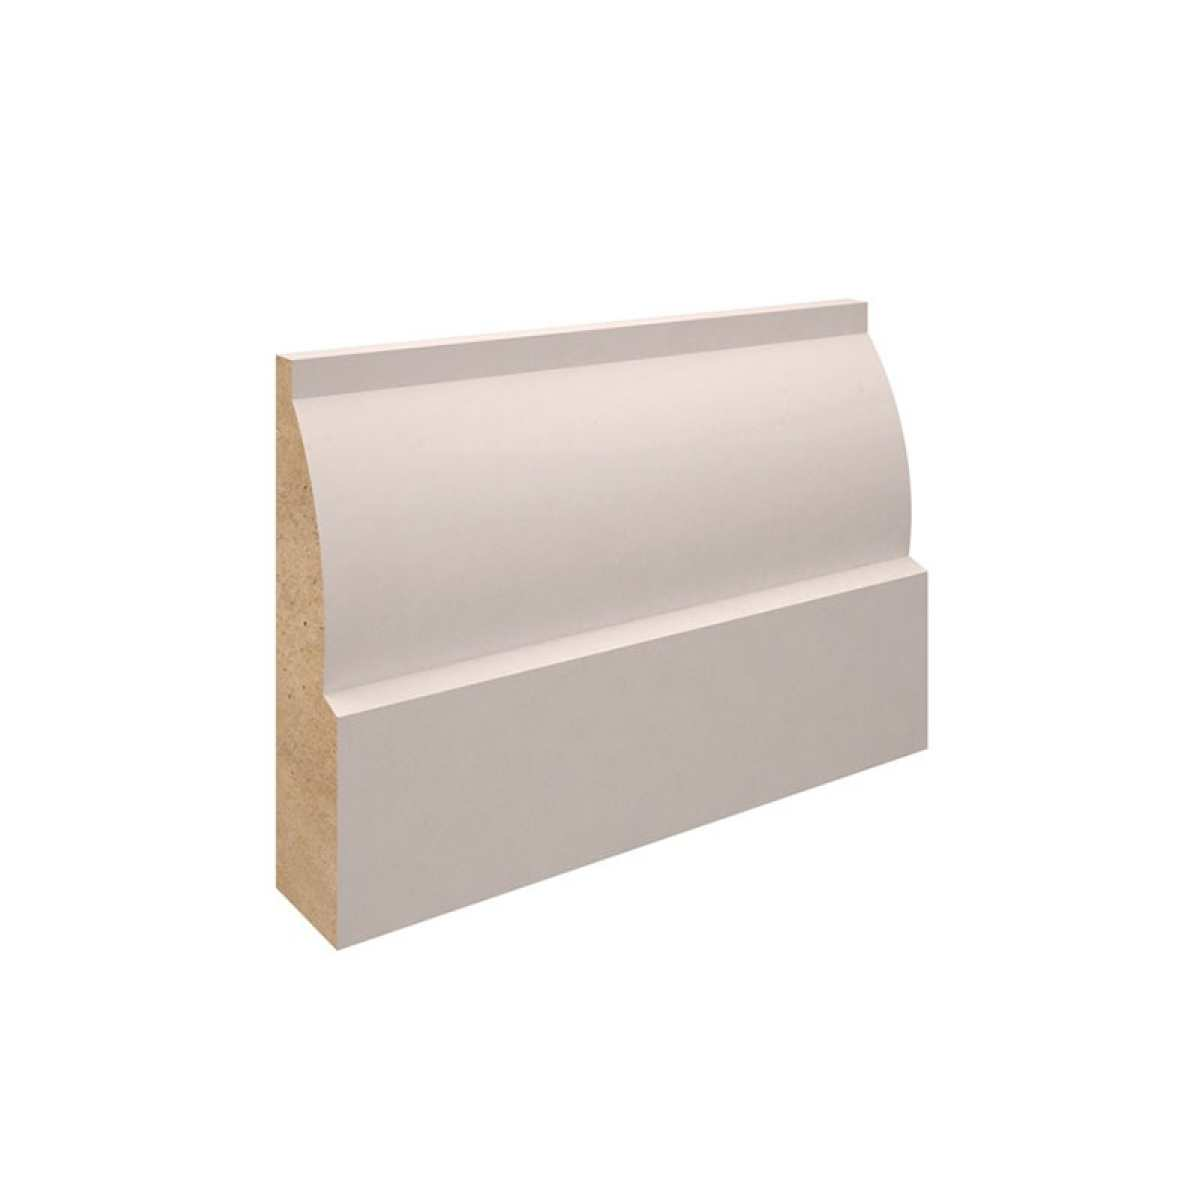 18 x 68 MDF  Ovolo. skirting board 800px 1 Image by Websters Timber